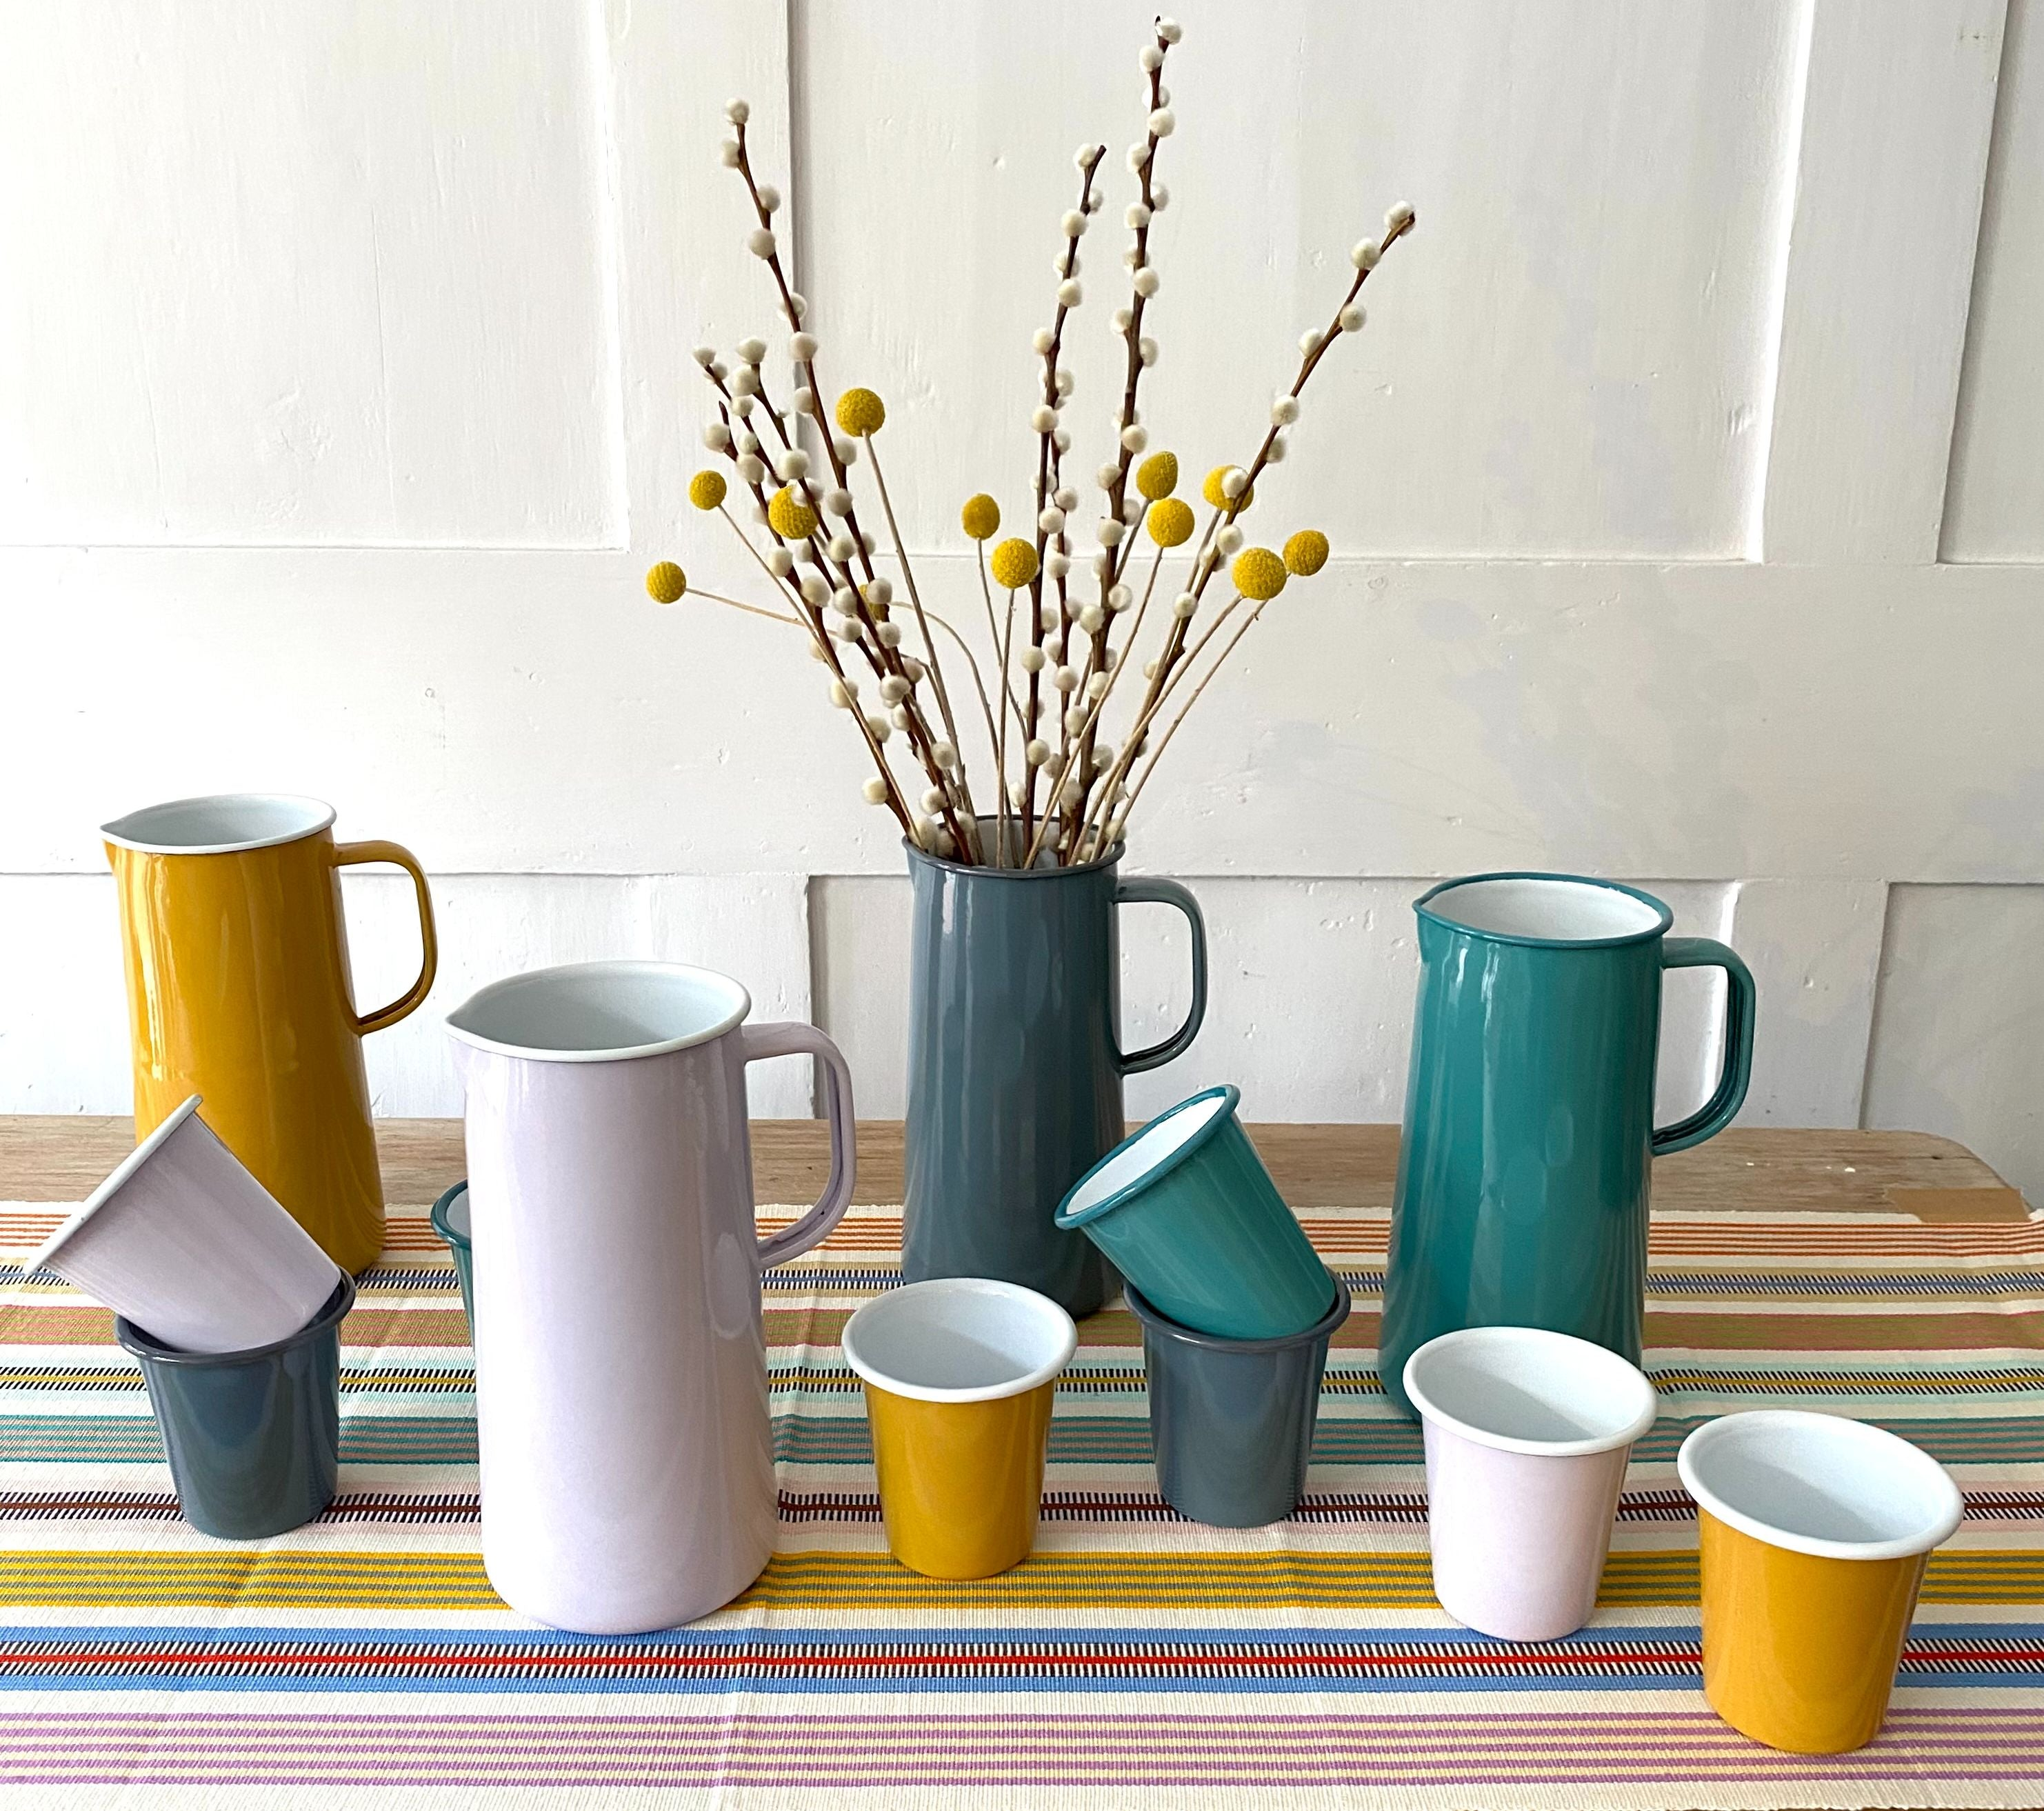 selection of colourful enamelware